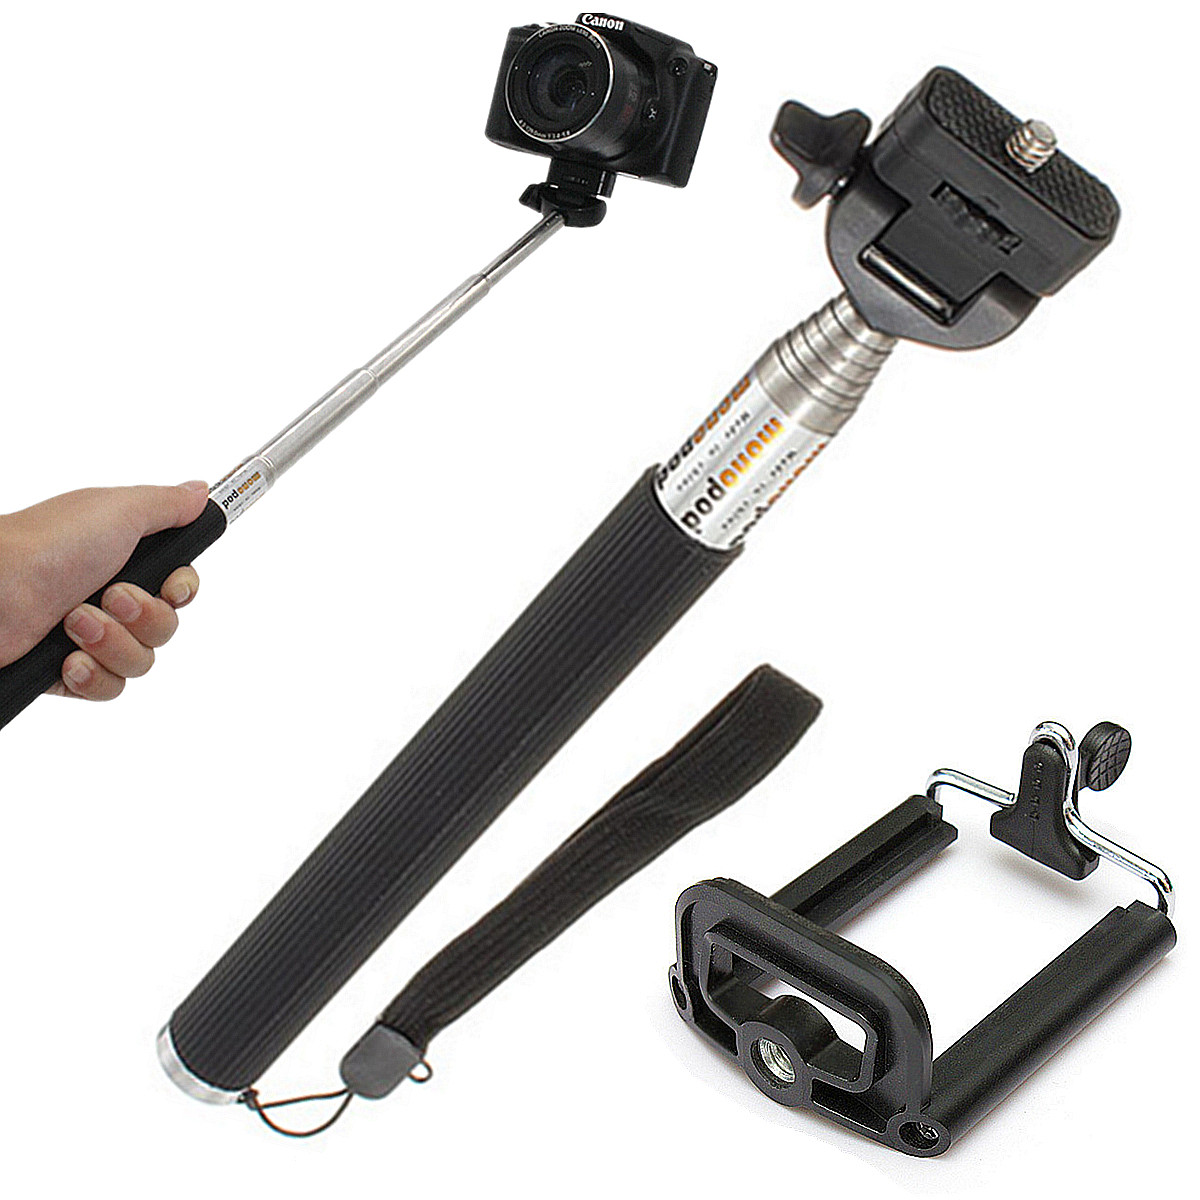 neu selfie stick handstativ teleskop monopod f r iphone 6 plus 6 5s 5c 5 4s 4 ebay. Black Bedroom Furniture Sets. Home Design Ideas